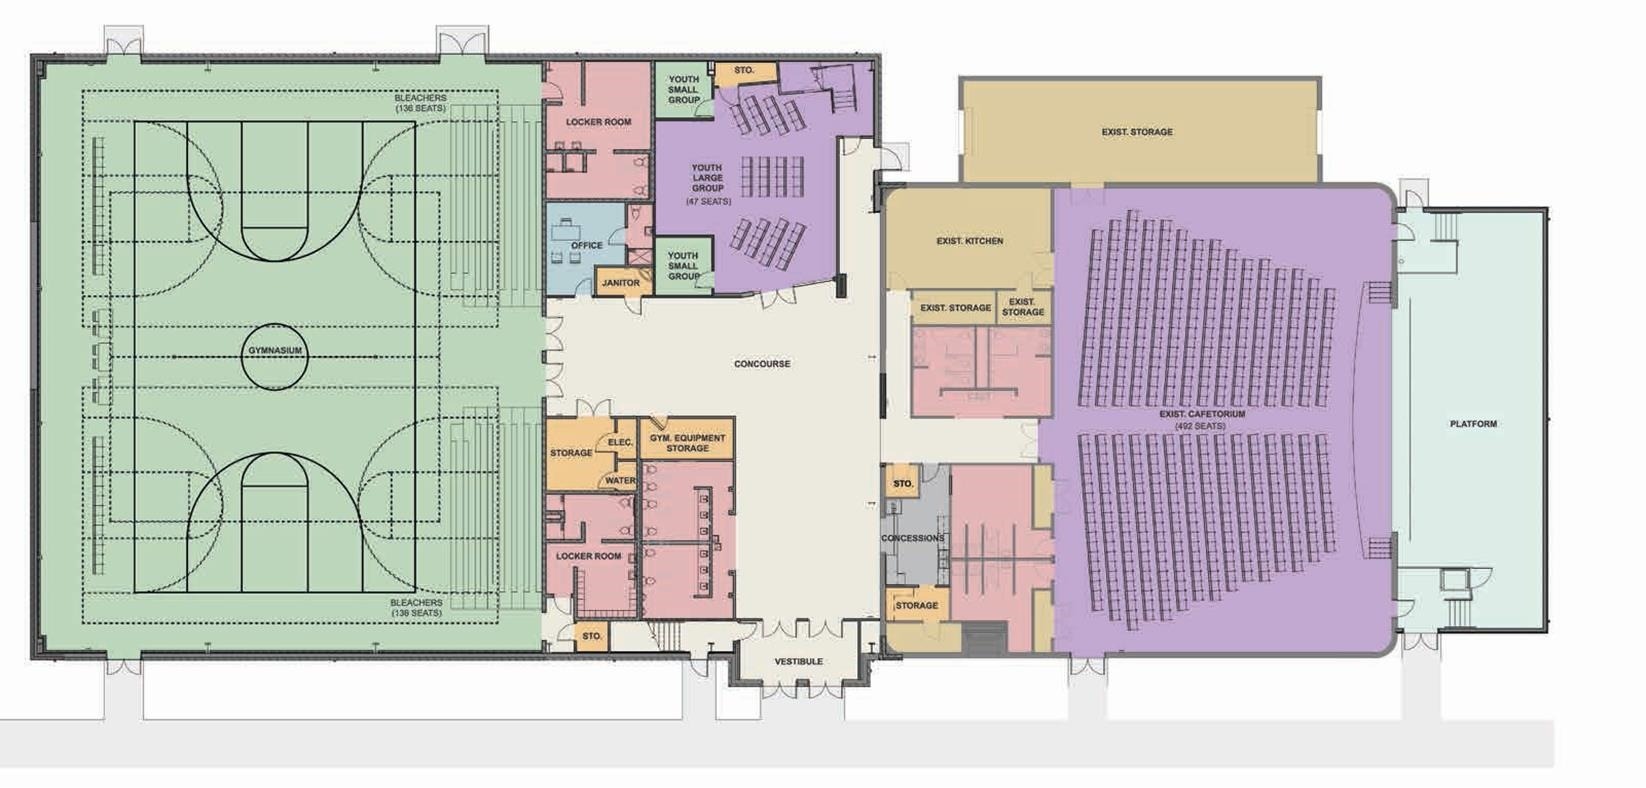 Plans for new gymnasium, youth room, and refurbishing of current gymnasium